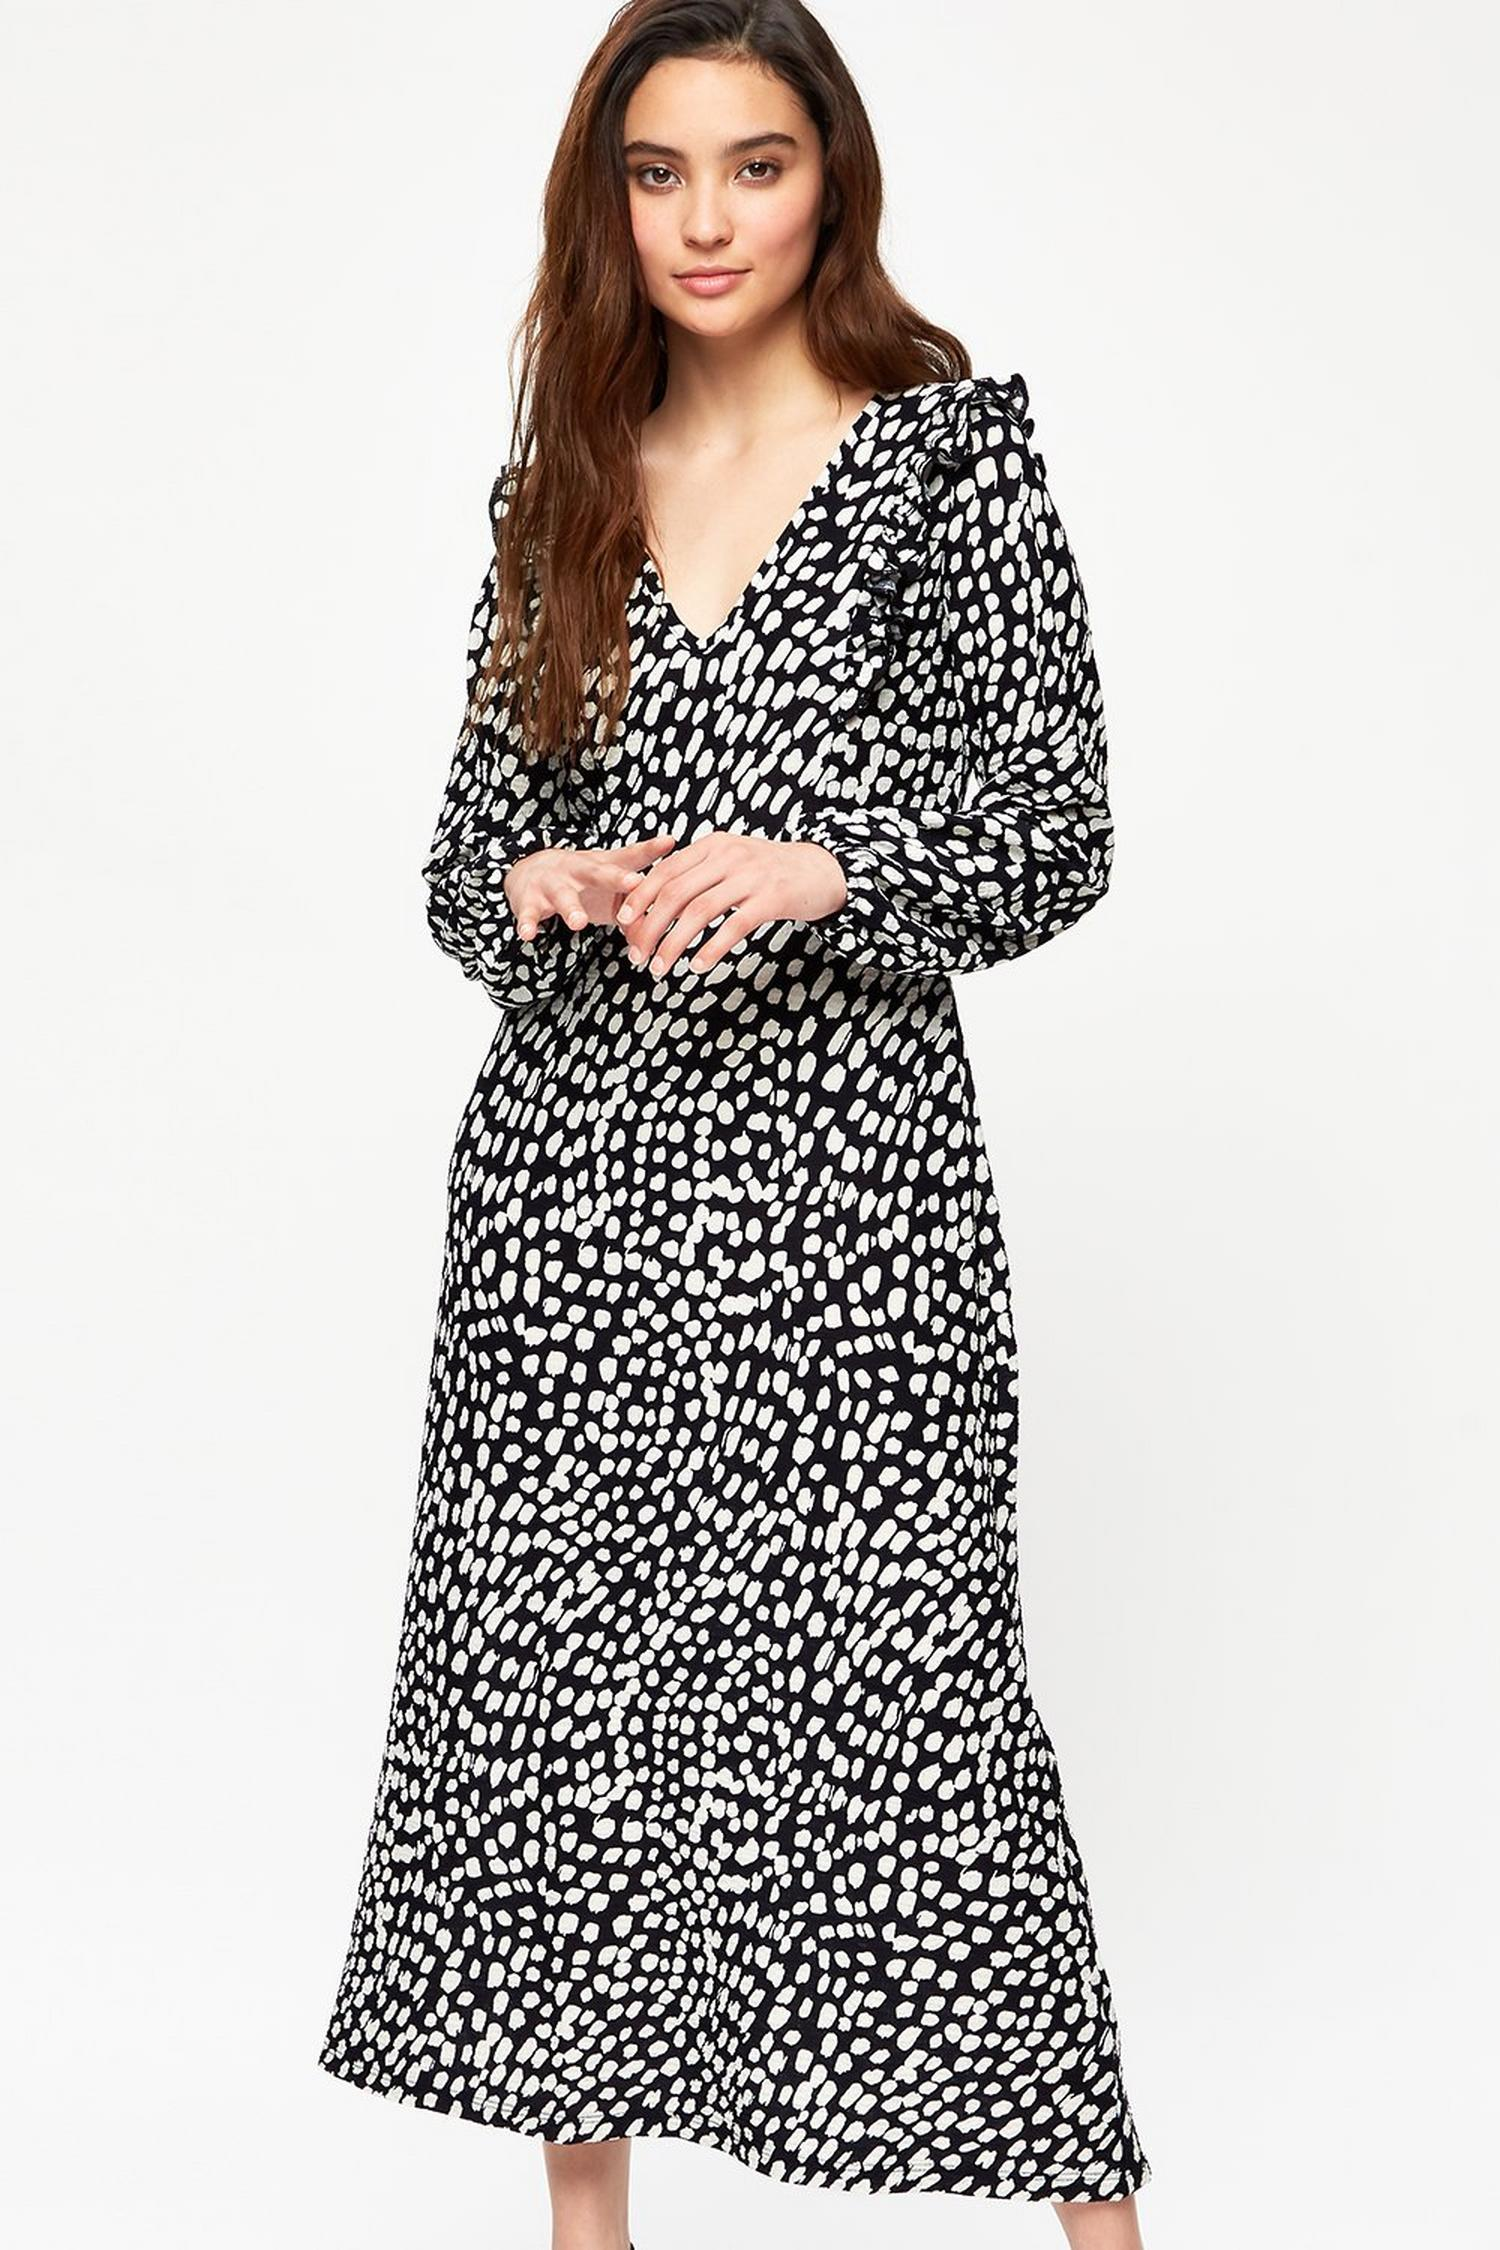 105 Petite Black And White Spot Midi Dress image number 2